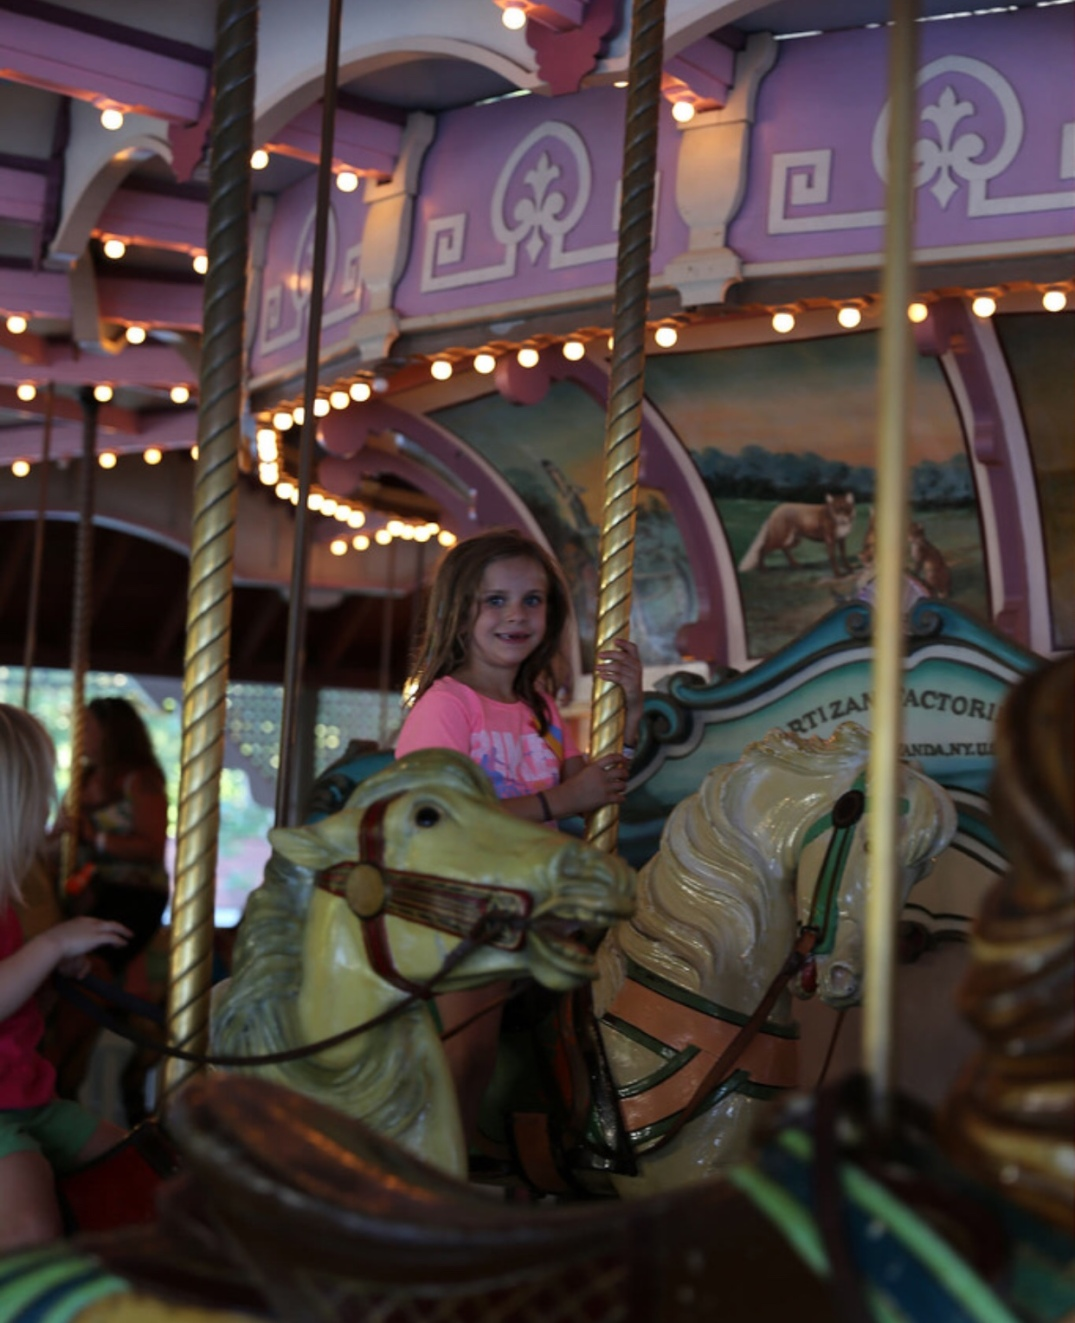 Coney Island RideCarousel Poles And Birthday Candles 8990AF6D 9E5B 4D97 B405 C576D876E39D